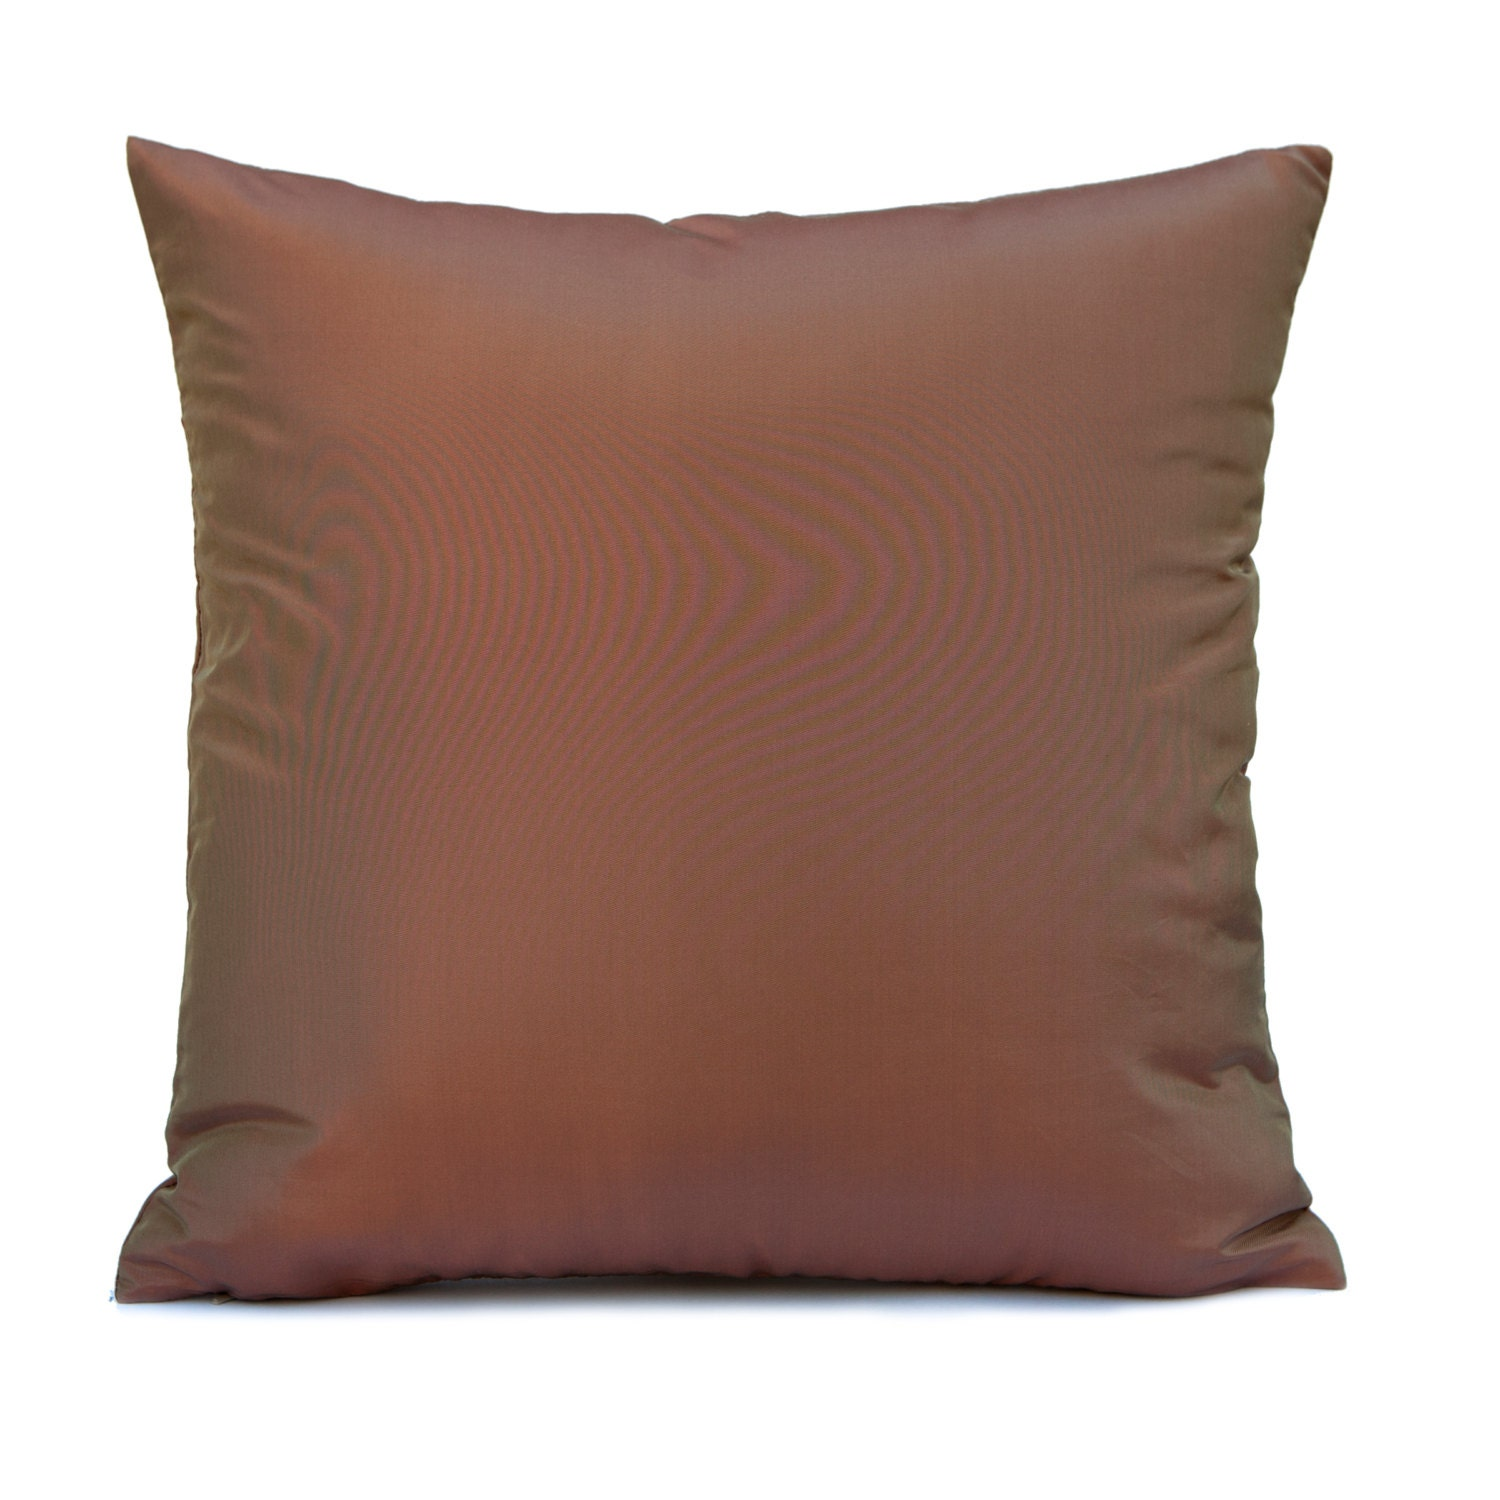 Solid Decorative Throw Pillows : Solid Copper Rust Pillow Throw Pillow Cover Decorative